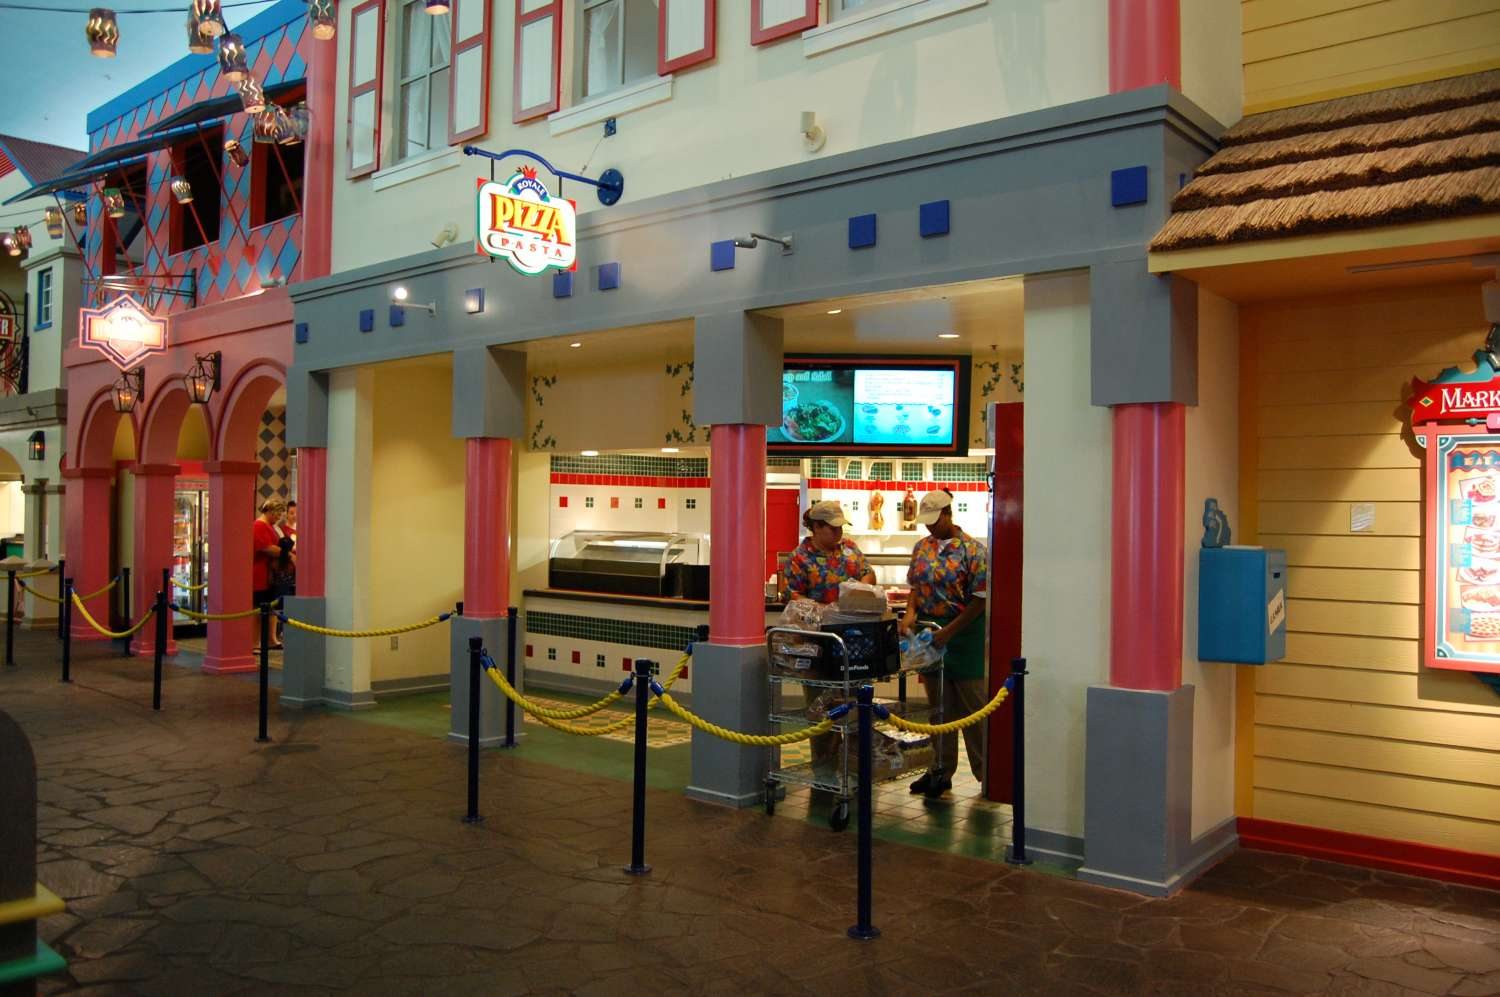 Disney's-Caribbean-Beach-Resort-Pizza.jpg